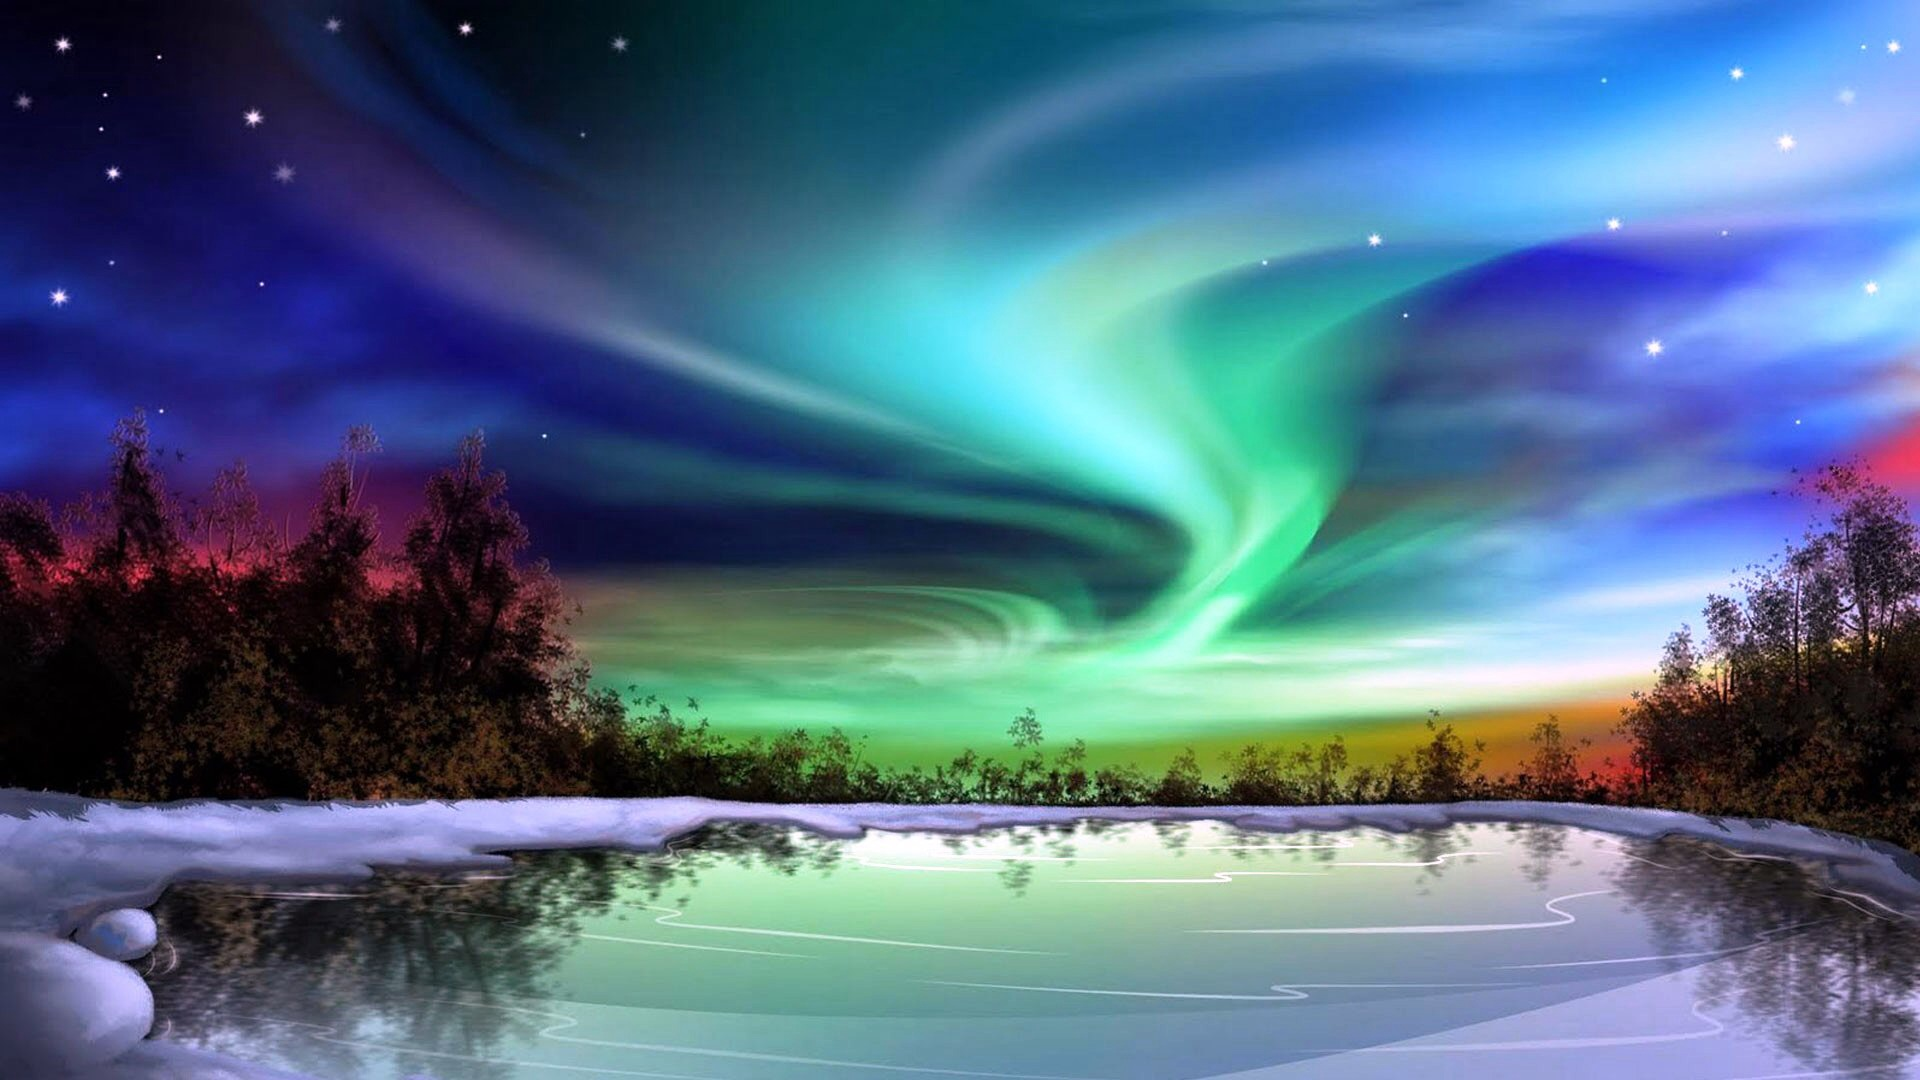 aurora borealis images northern lights hd wallpaper and background